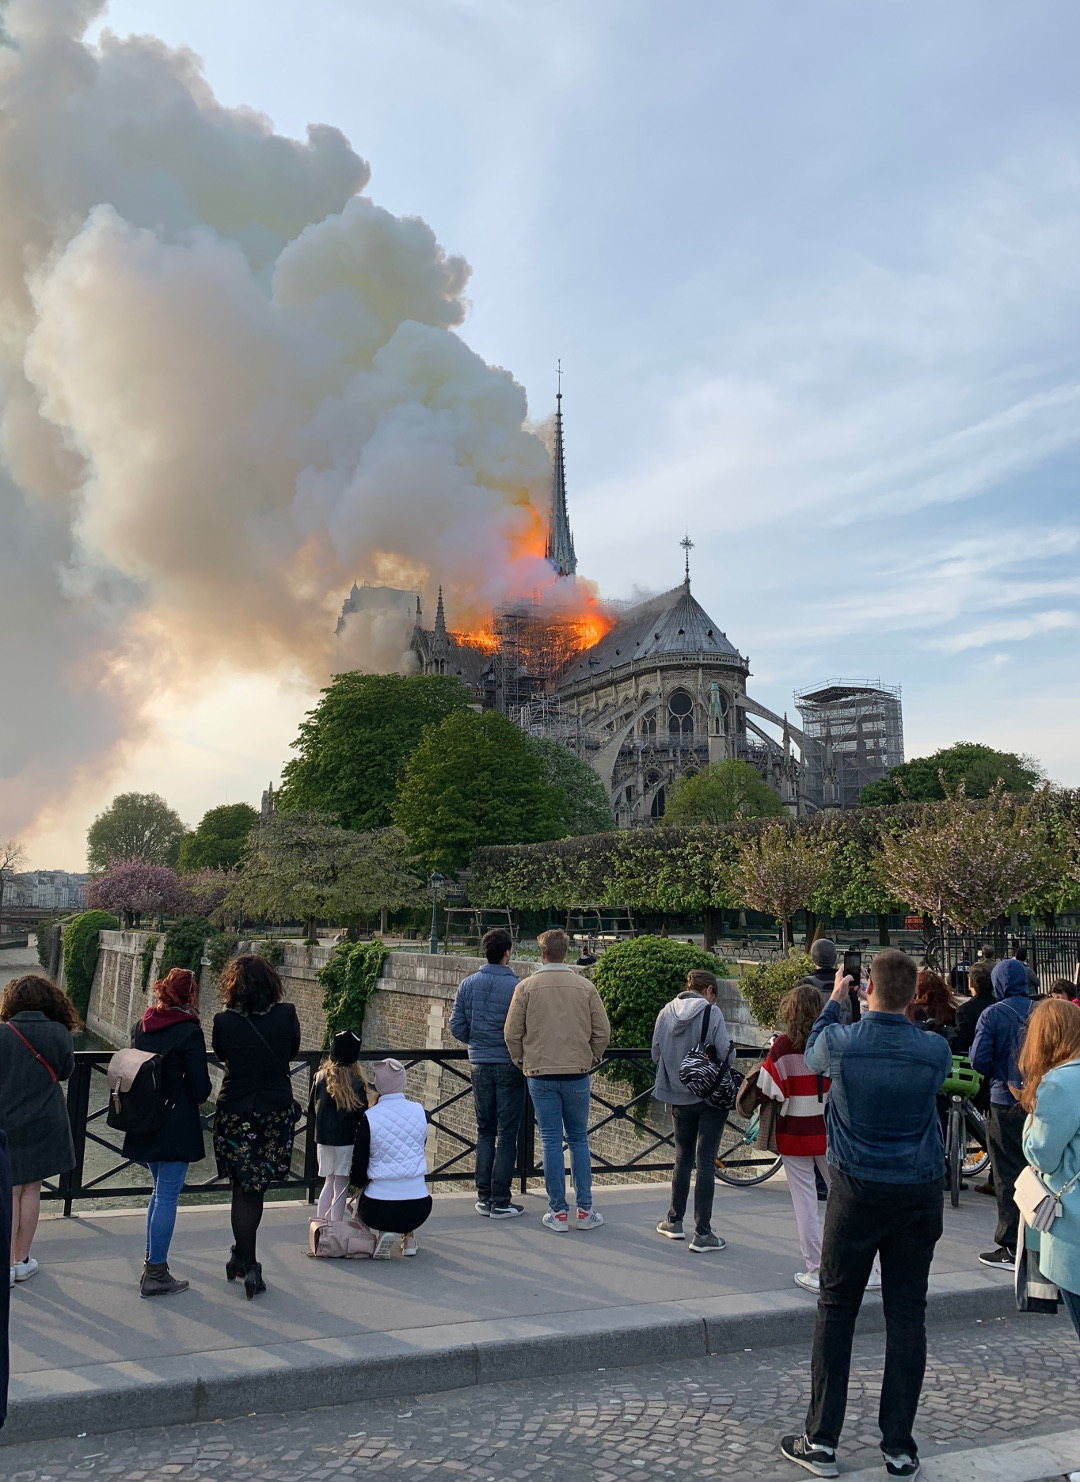 The Notre Dame fire. Photographs by William Hall